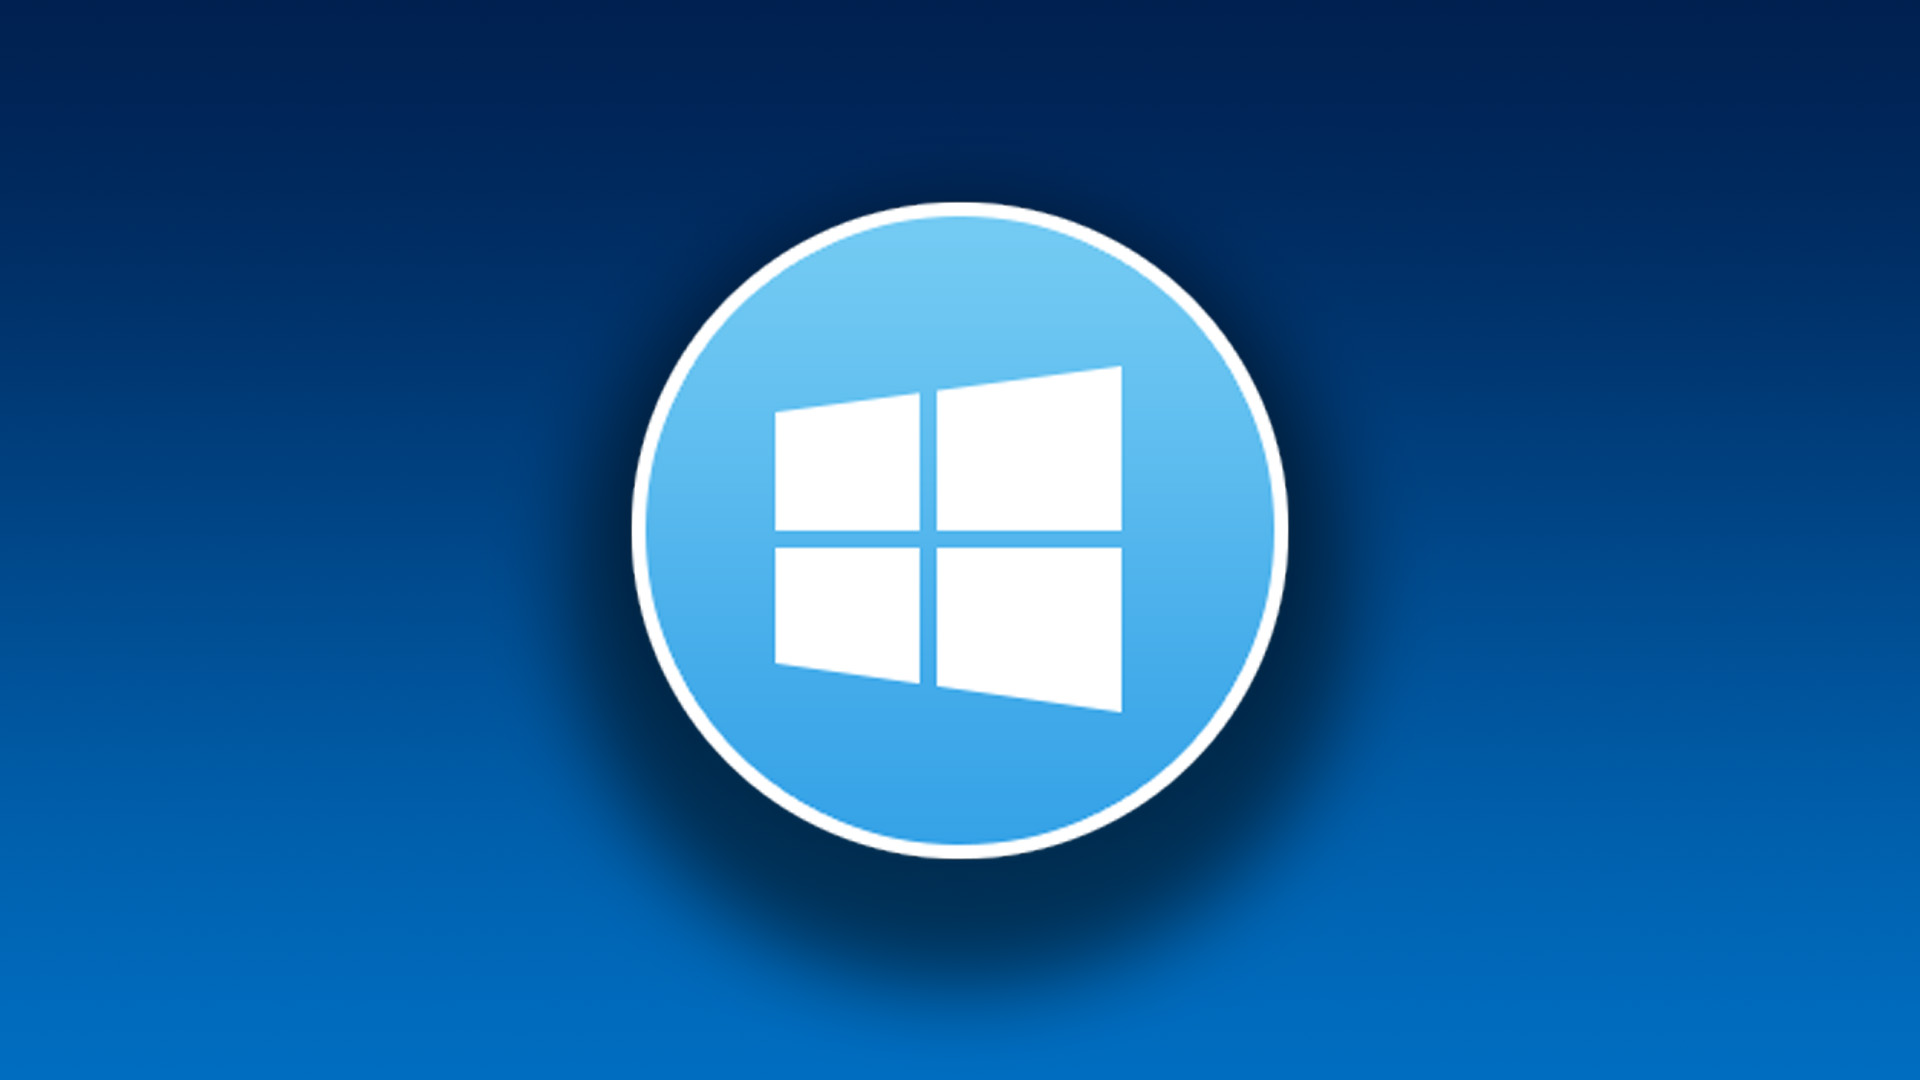 Windows 10 is coming this summer - VG247